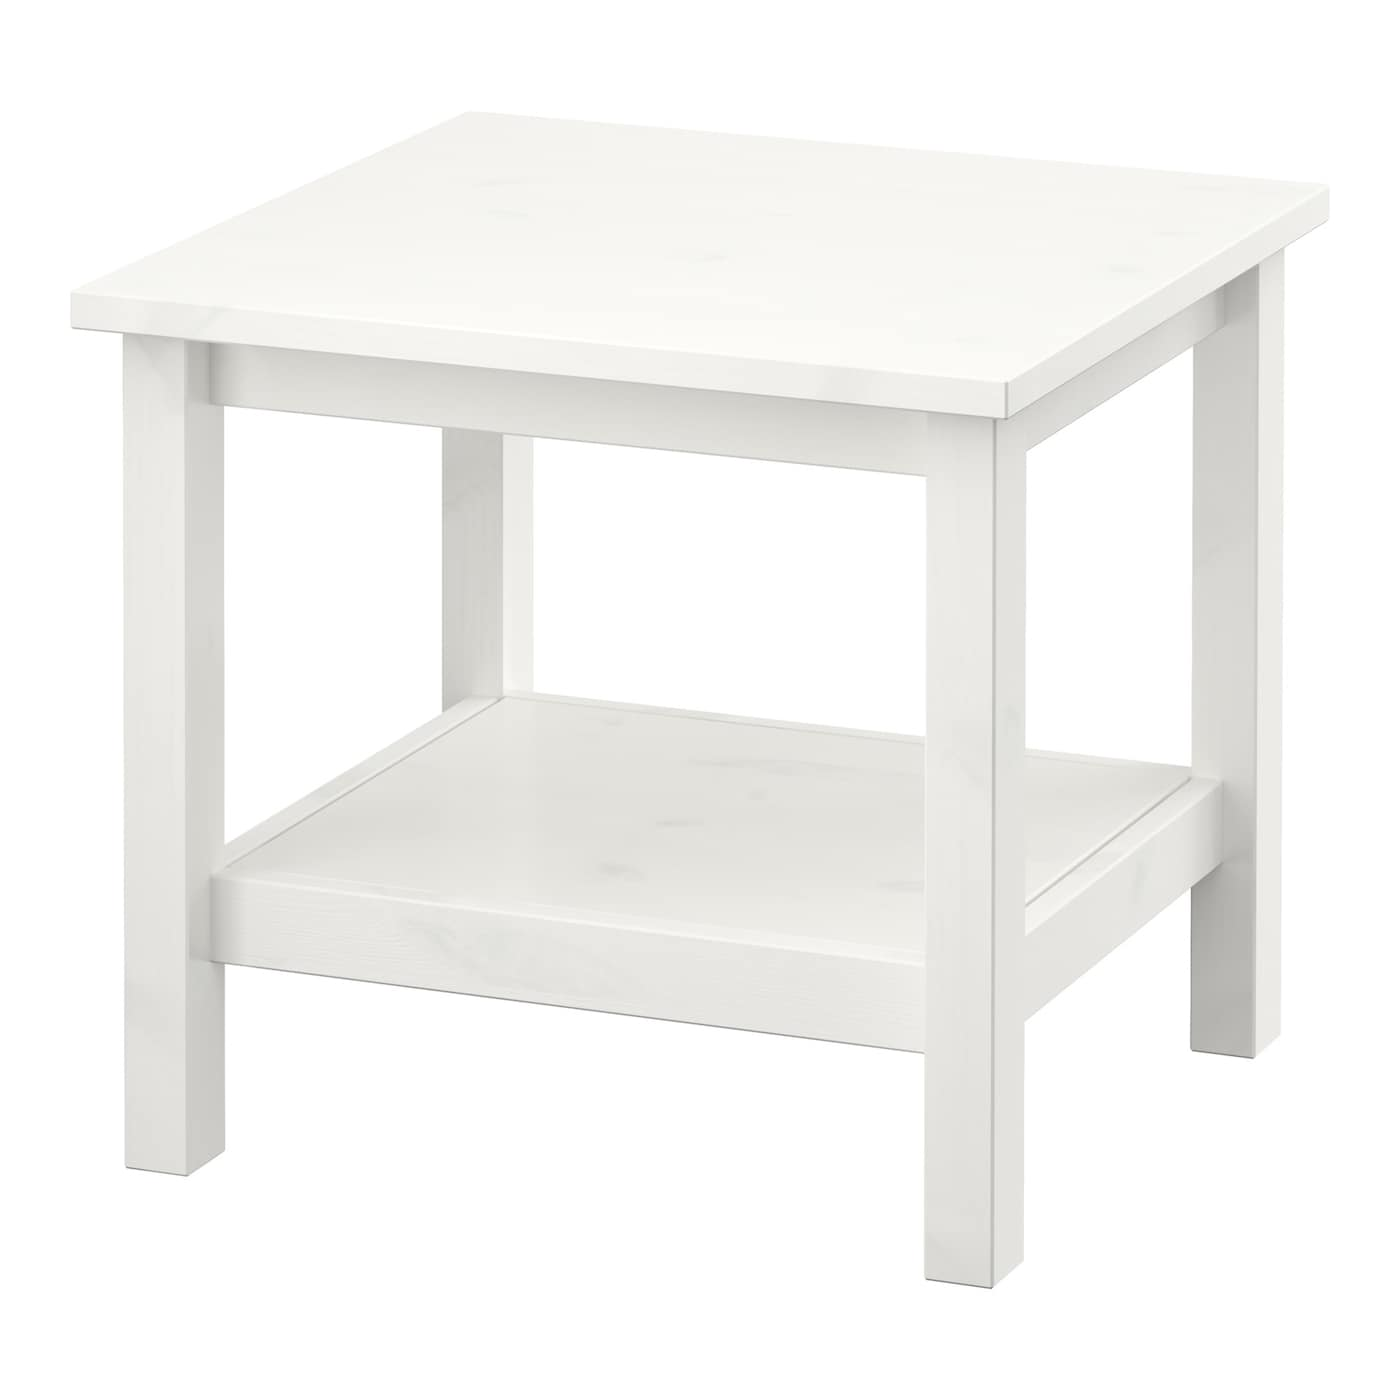 Hemnes side table white stain 55 x 55 cm ikea for Ikea comodino hemnes